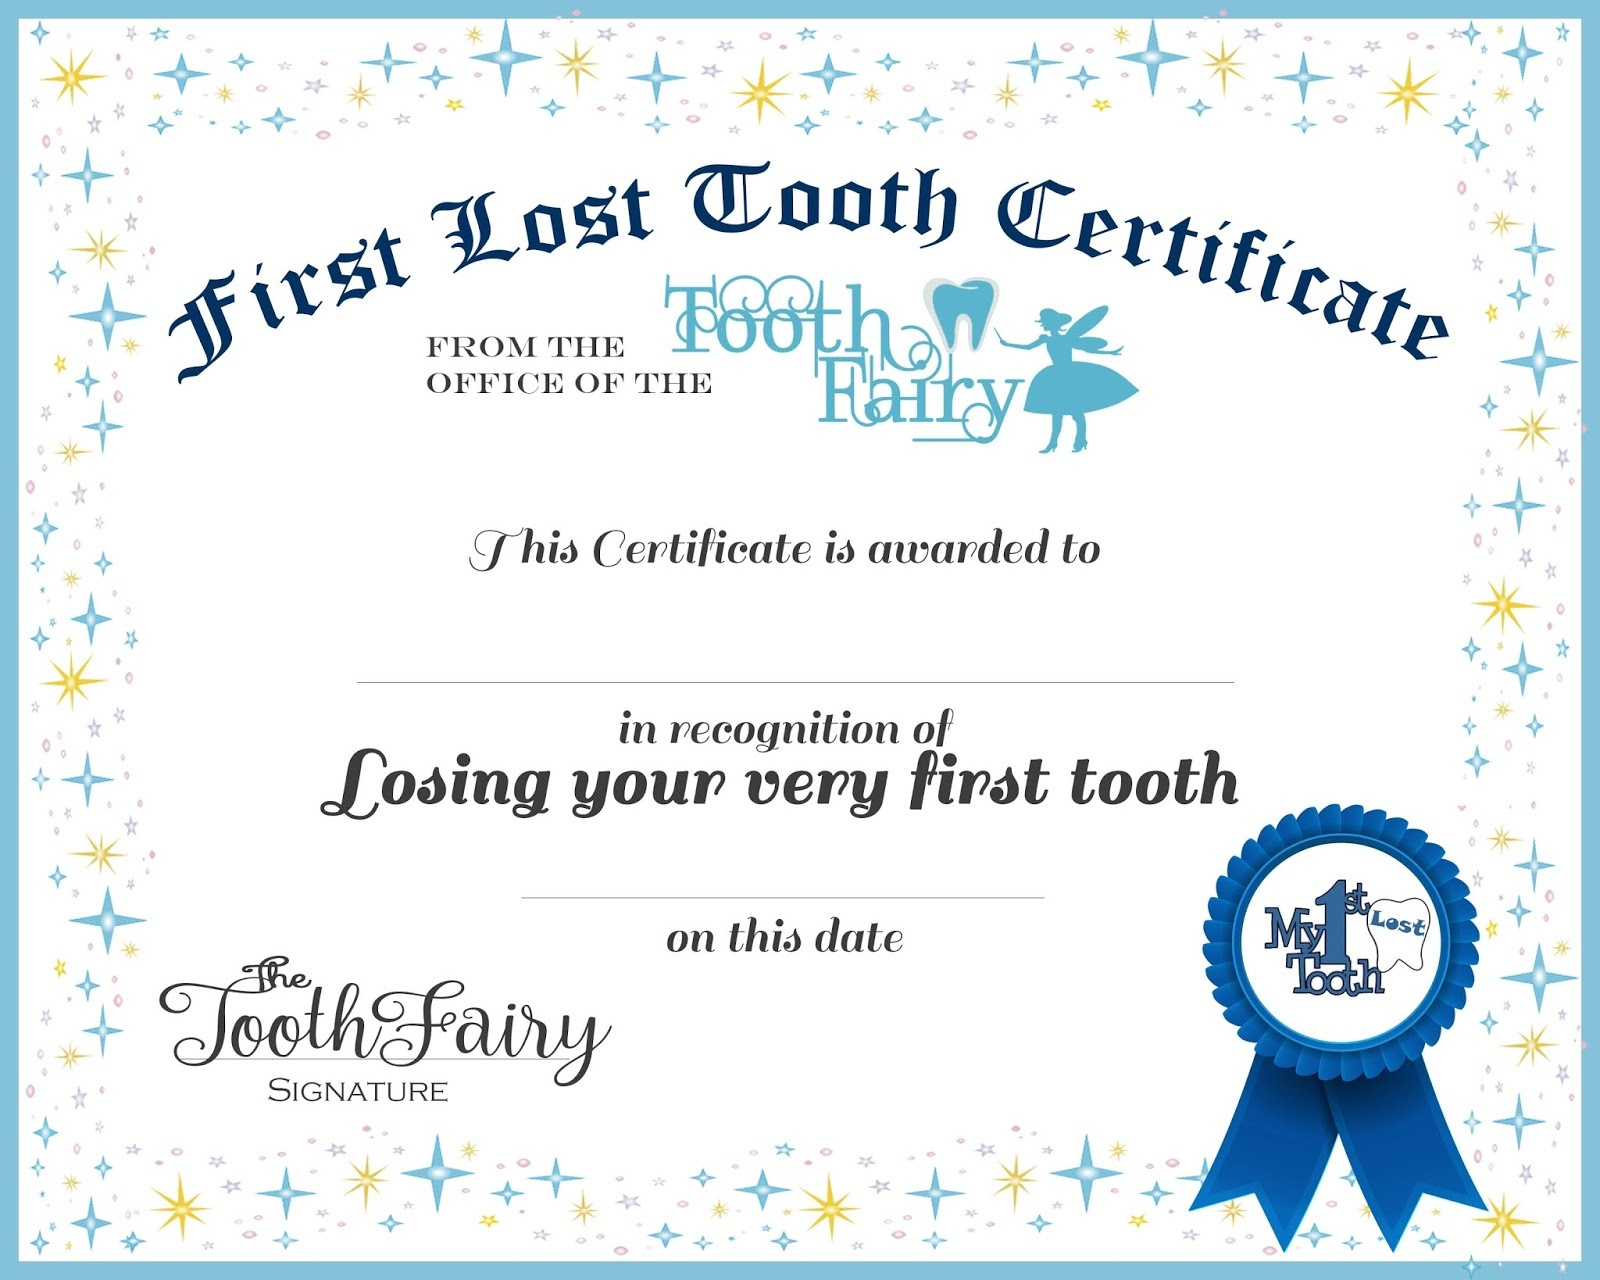 Easy Tooth Fairy Ideas & Tips For Parents / Free Printables - Free Tooth Fairy Printables